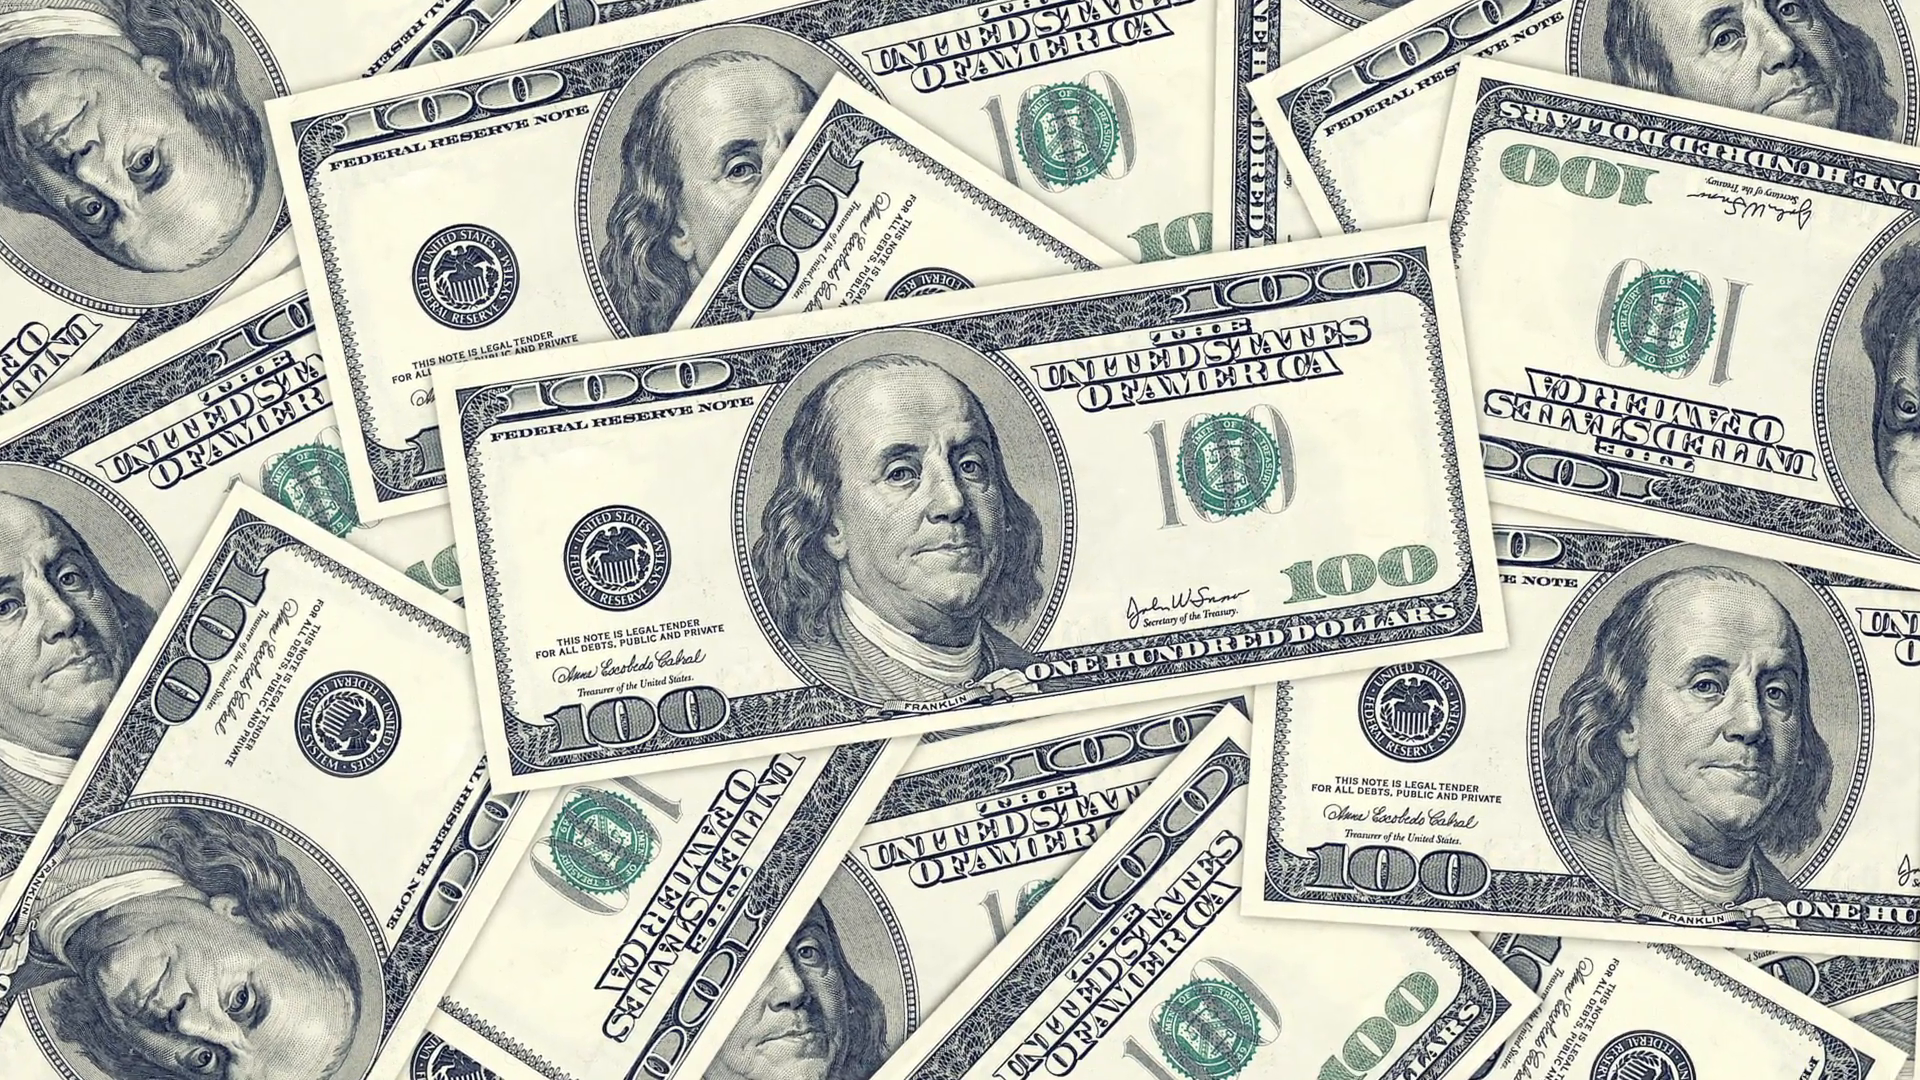 hundred-dollar-bills-as-background-money-pile-financial-theme-1920x1080-1080p-hd-format_qkfzheo8__F0000.png